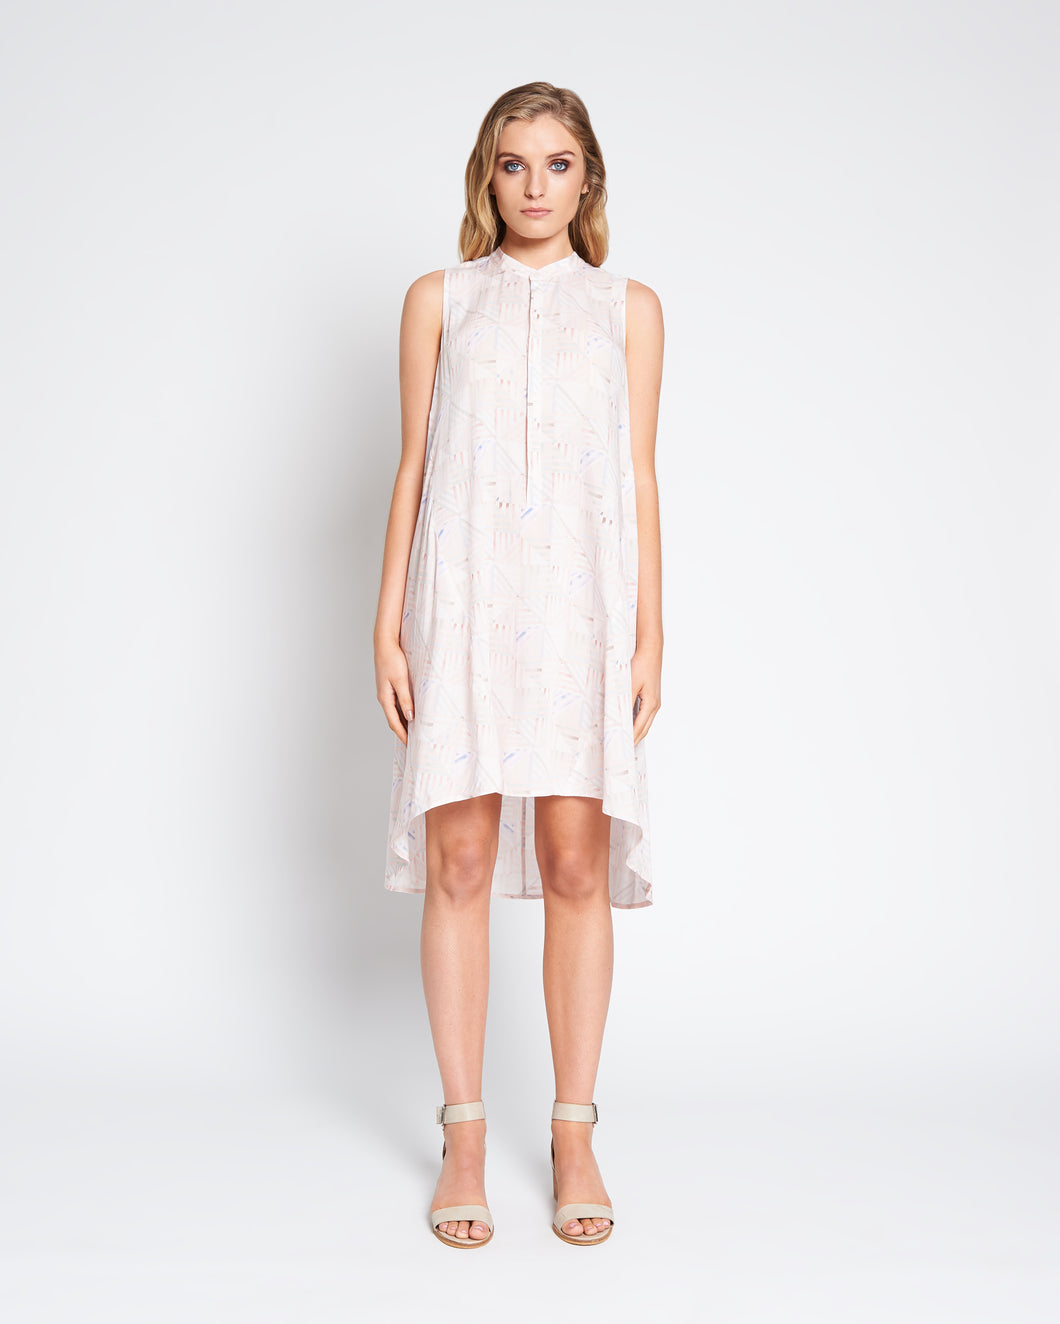 Adella Shirt Dress - ELLY M Australia